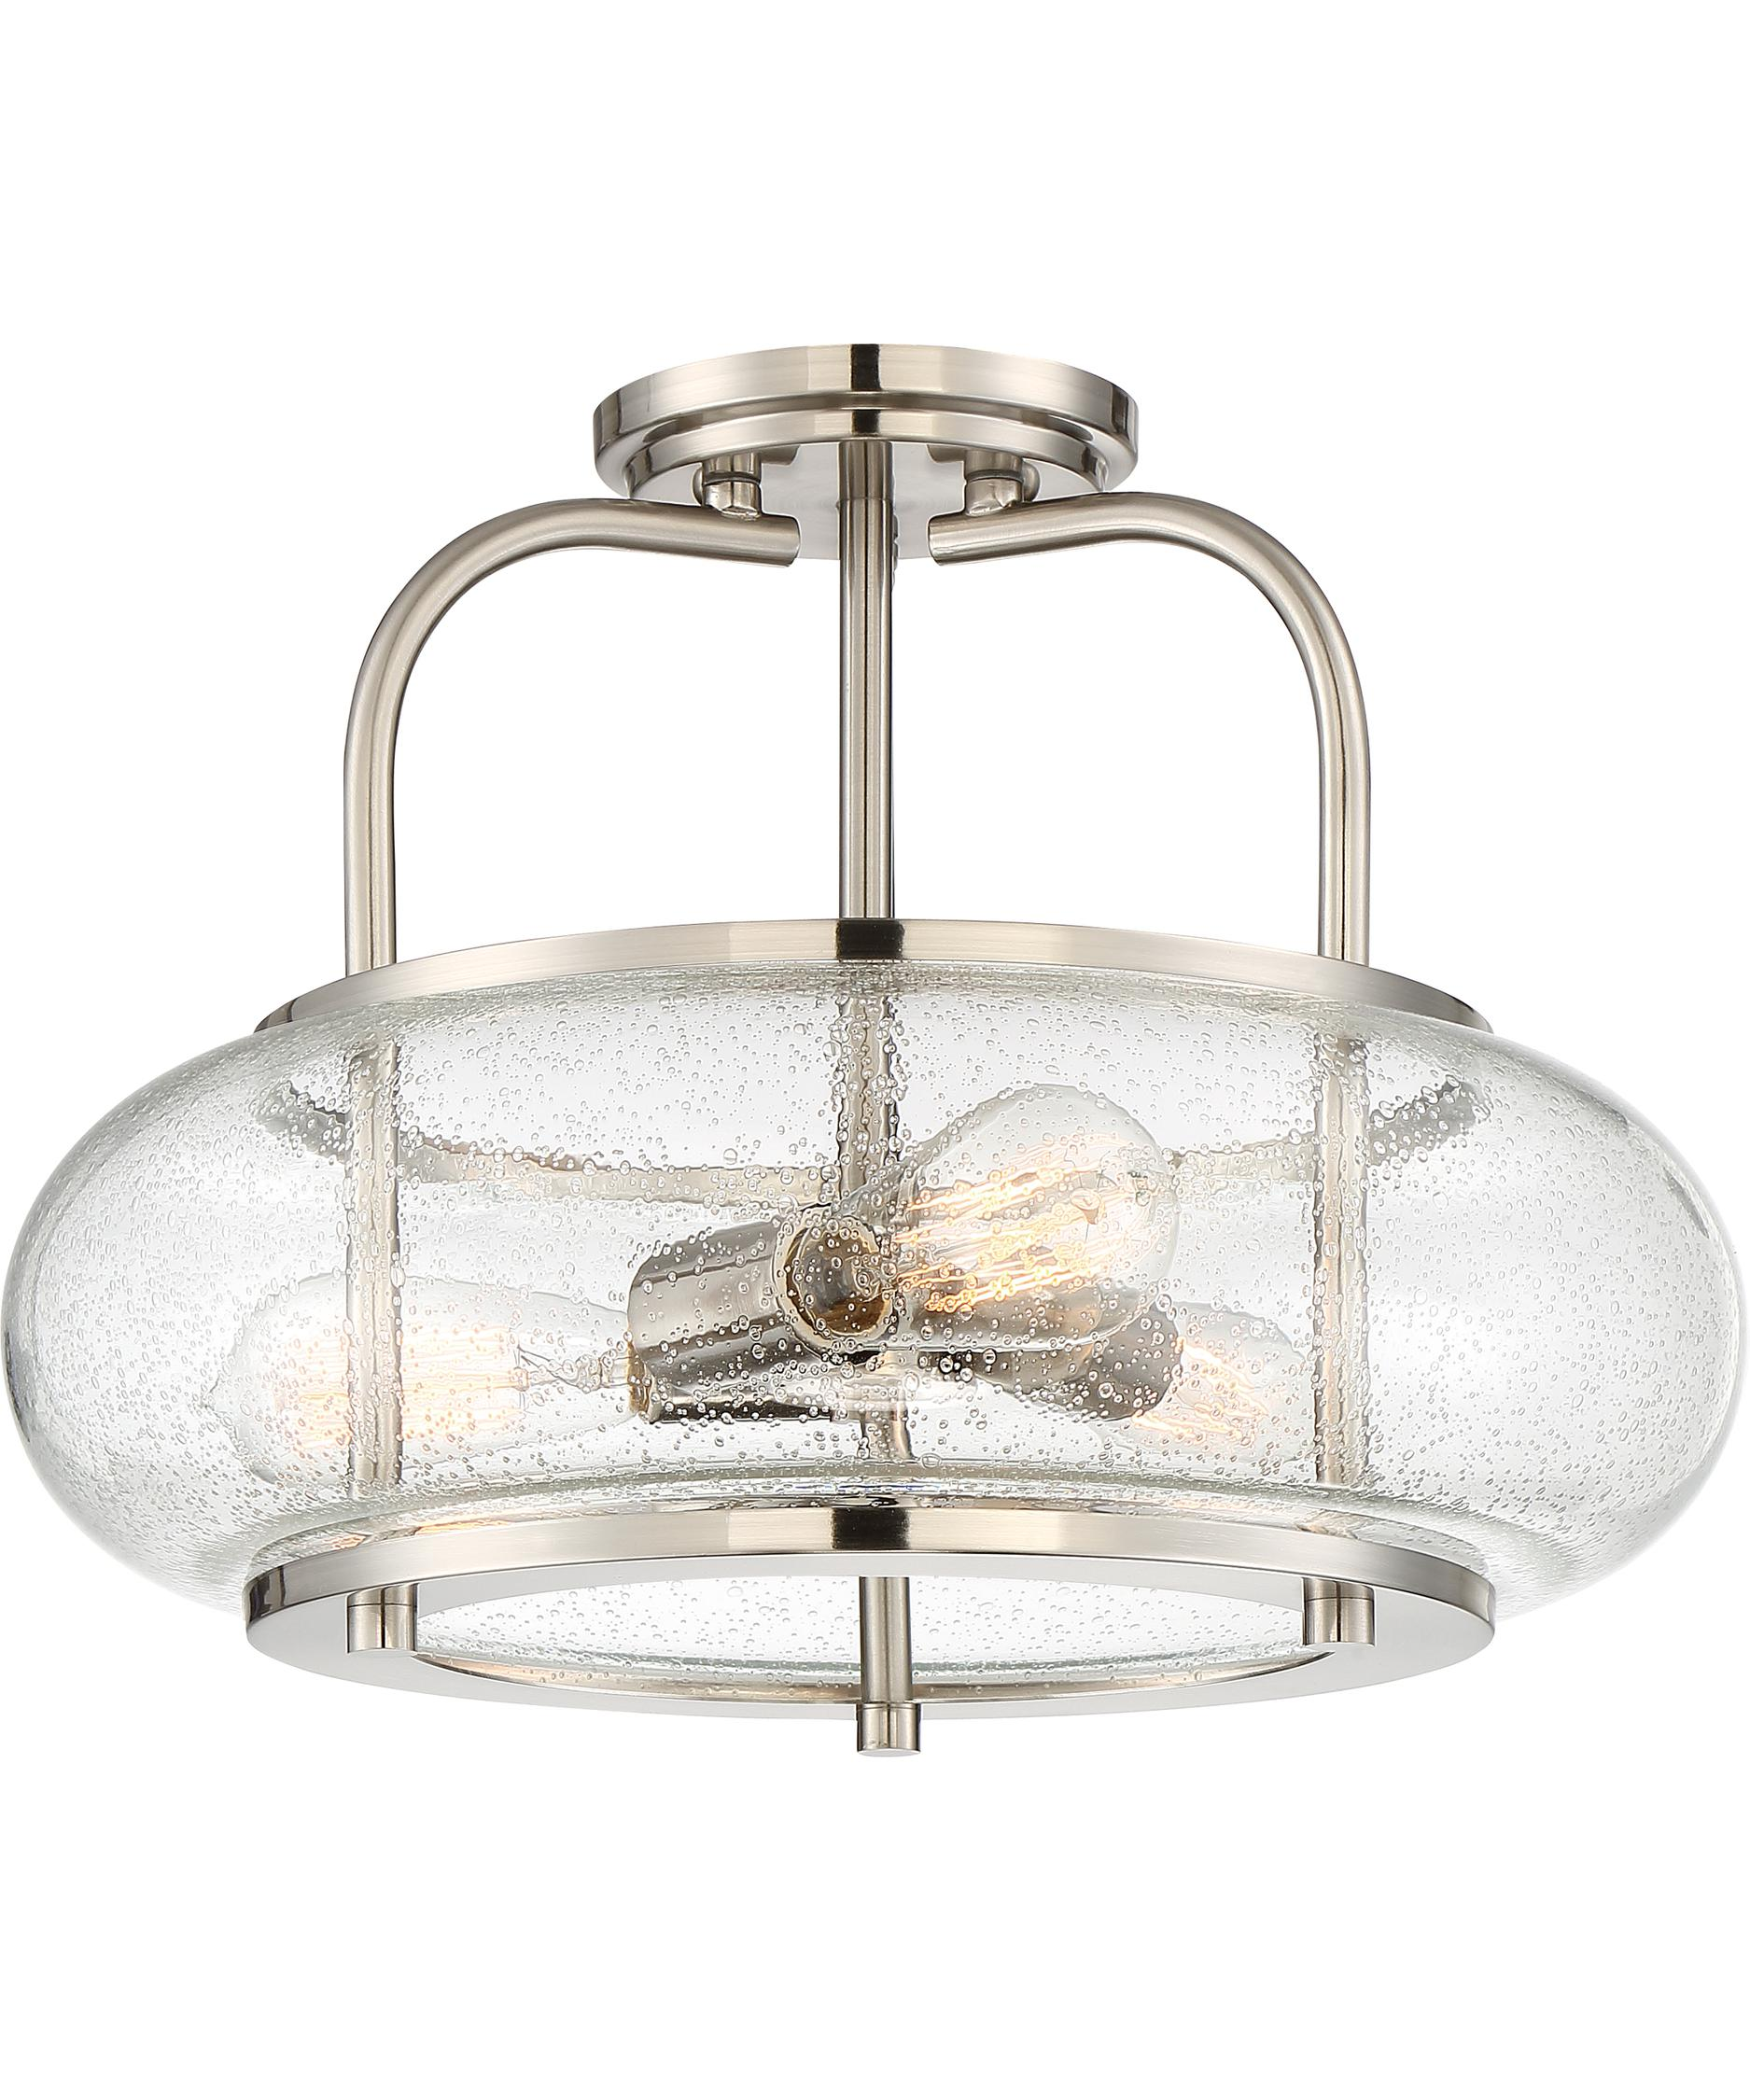 quoizel trg1716 trilogy 16 inch wide semi flush mount capitol lighting